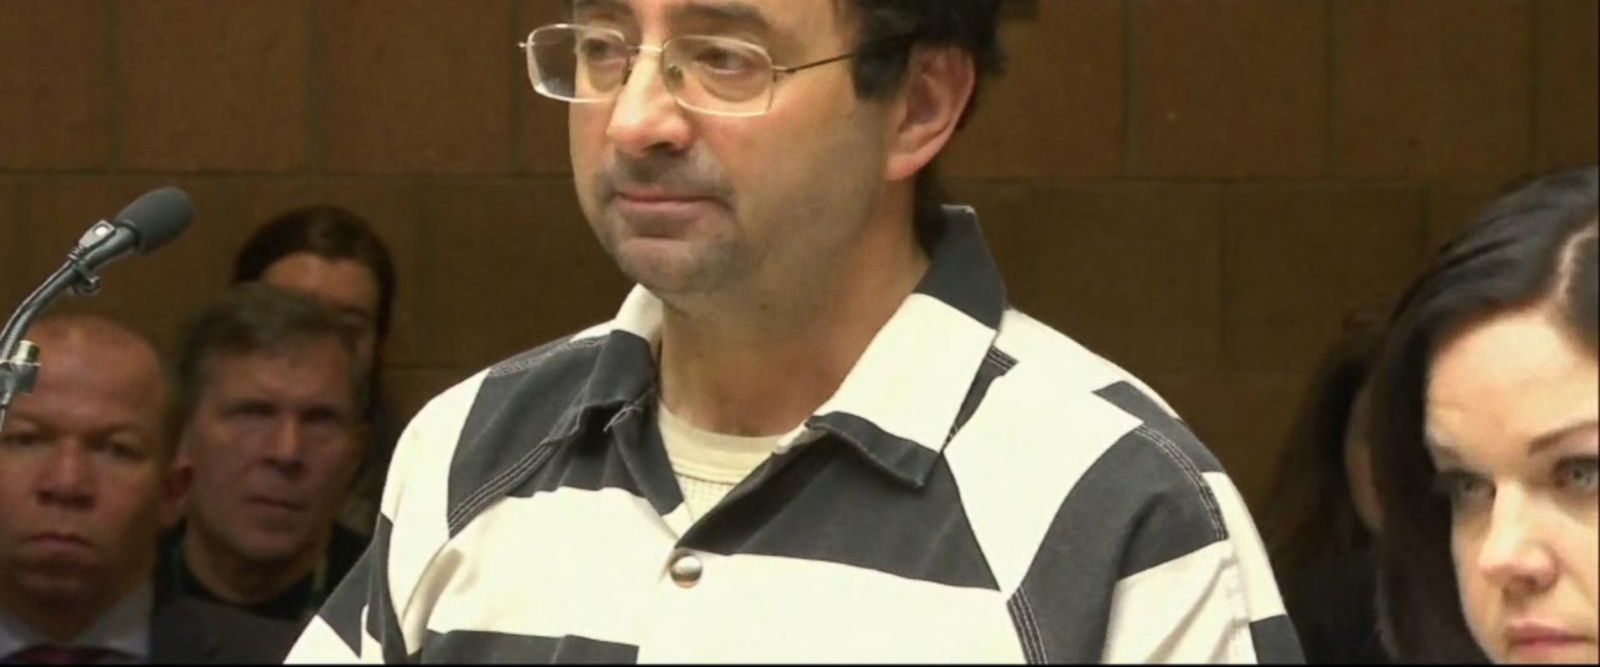 VIDEO: Index: Former doctor for Team USA now accused of molesting 9 young gymnasts